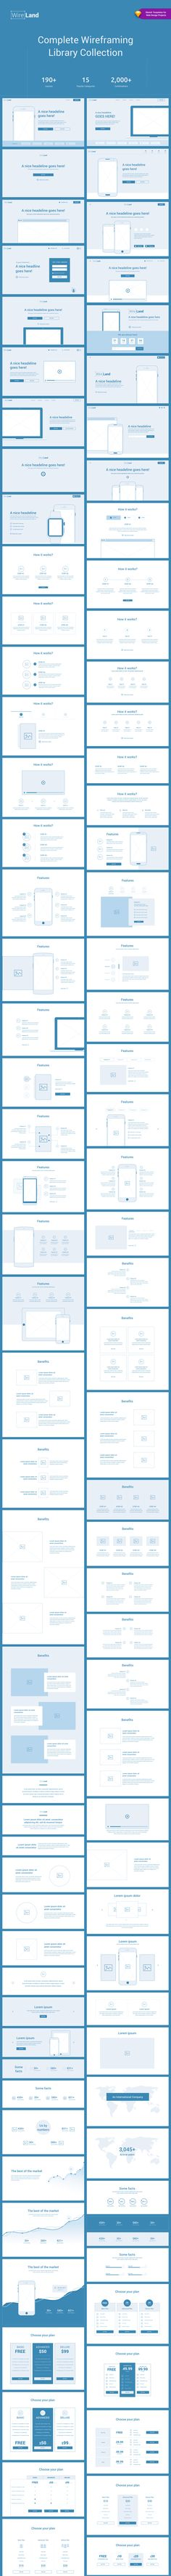 Wireland – is a Complete Wireframing Library Collection optimized to structure web design projects really fast and easy while getting great results. This library consist on 190+ ready-to-use layout sections divided into 15 popular content categories.  Excellent for Landing Pages and any kind of Web design Projects.  Web Navigation, Navbar, Header Styles.